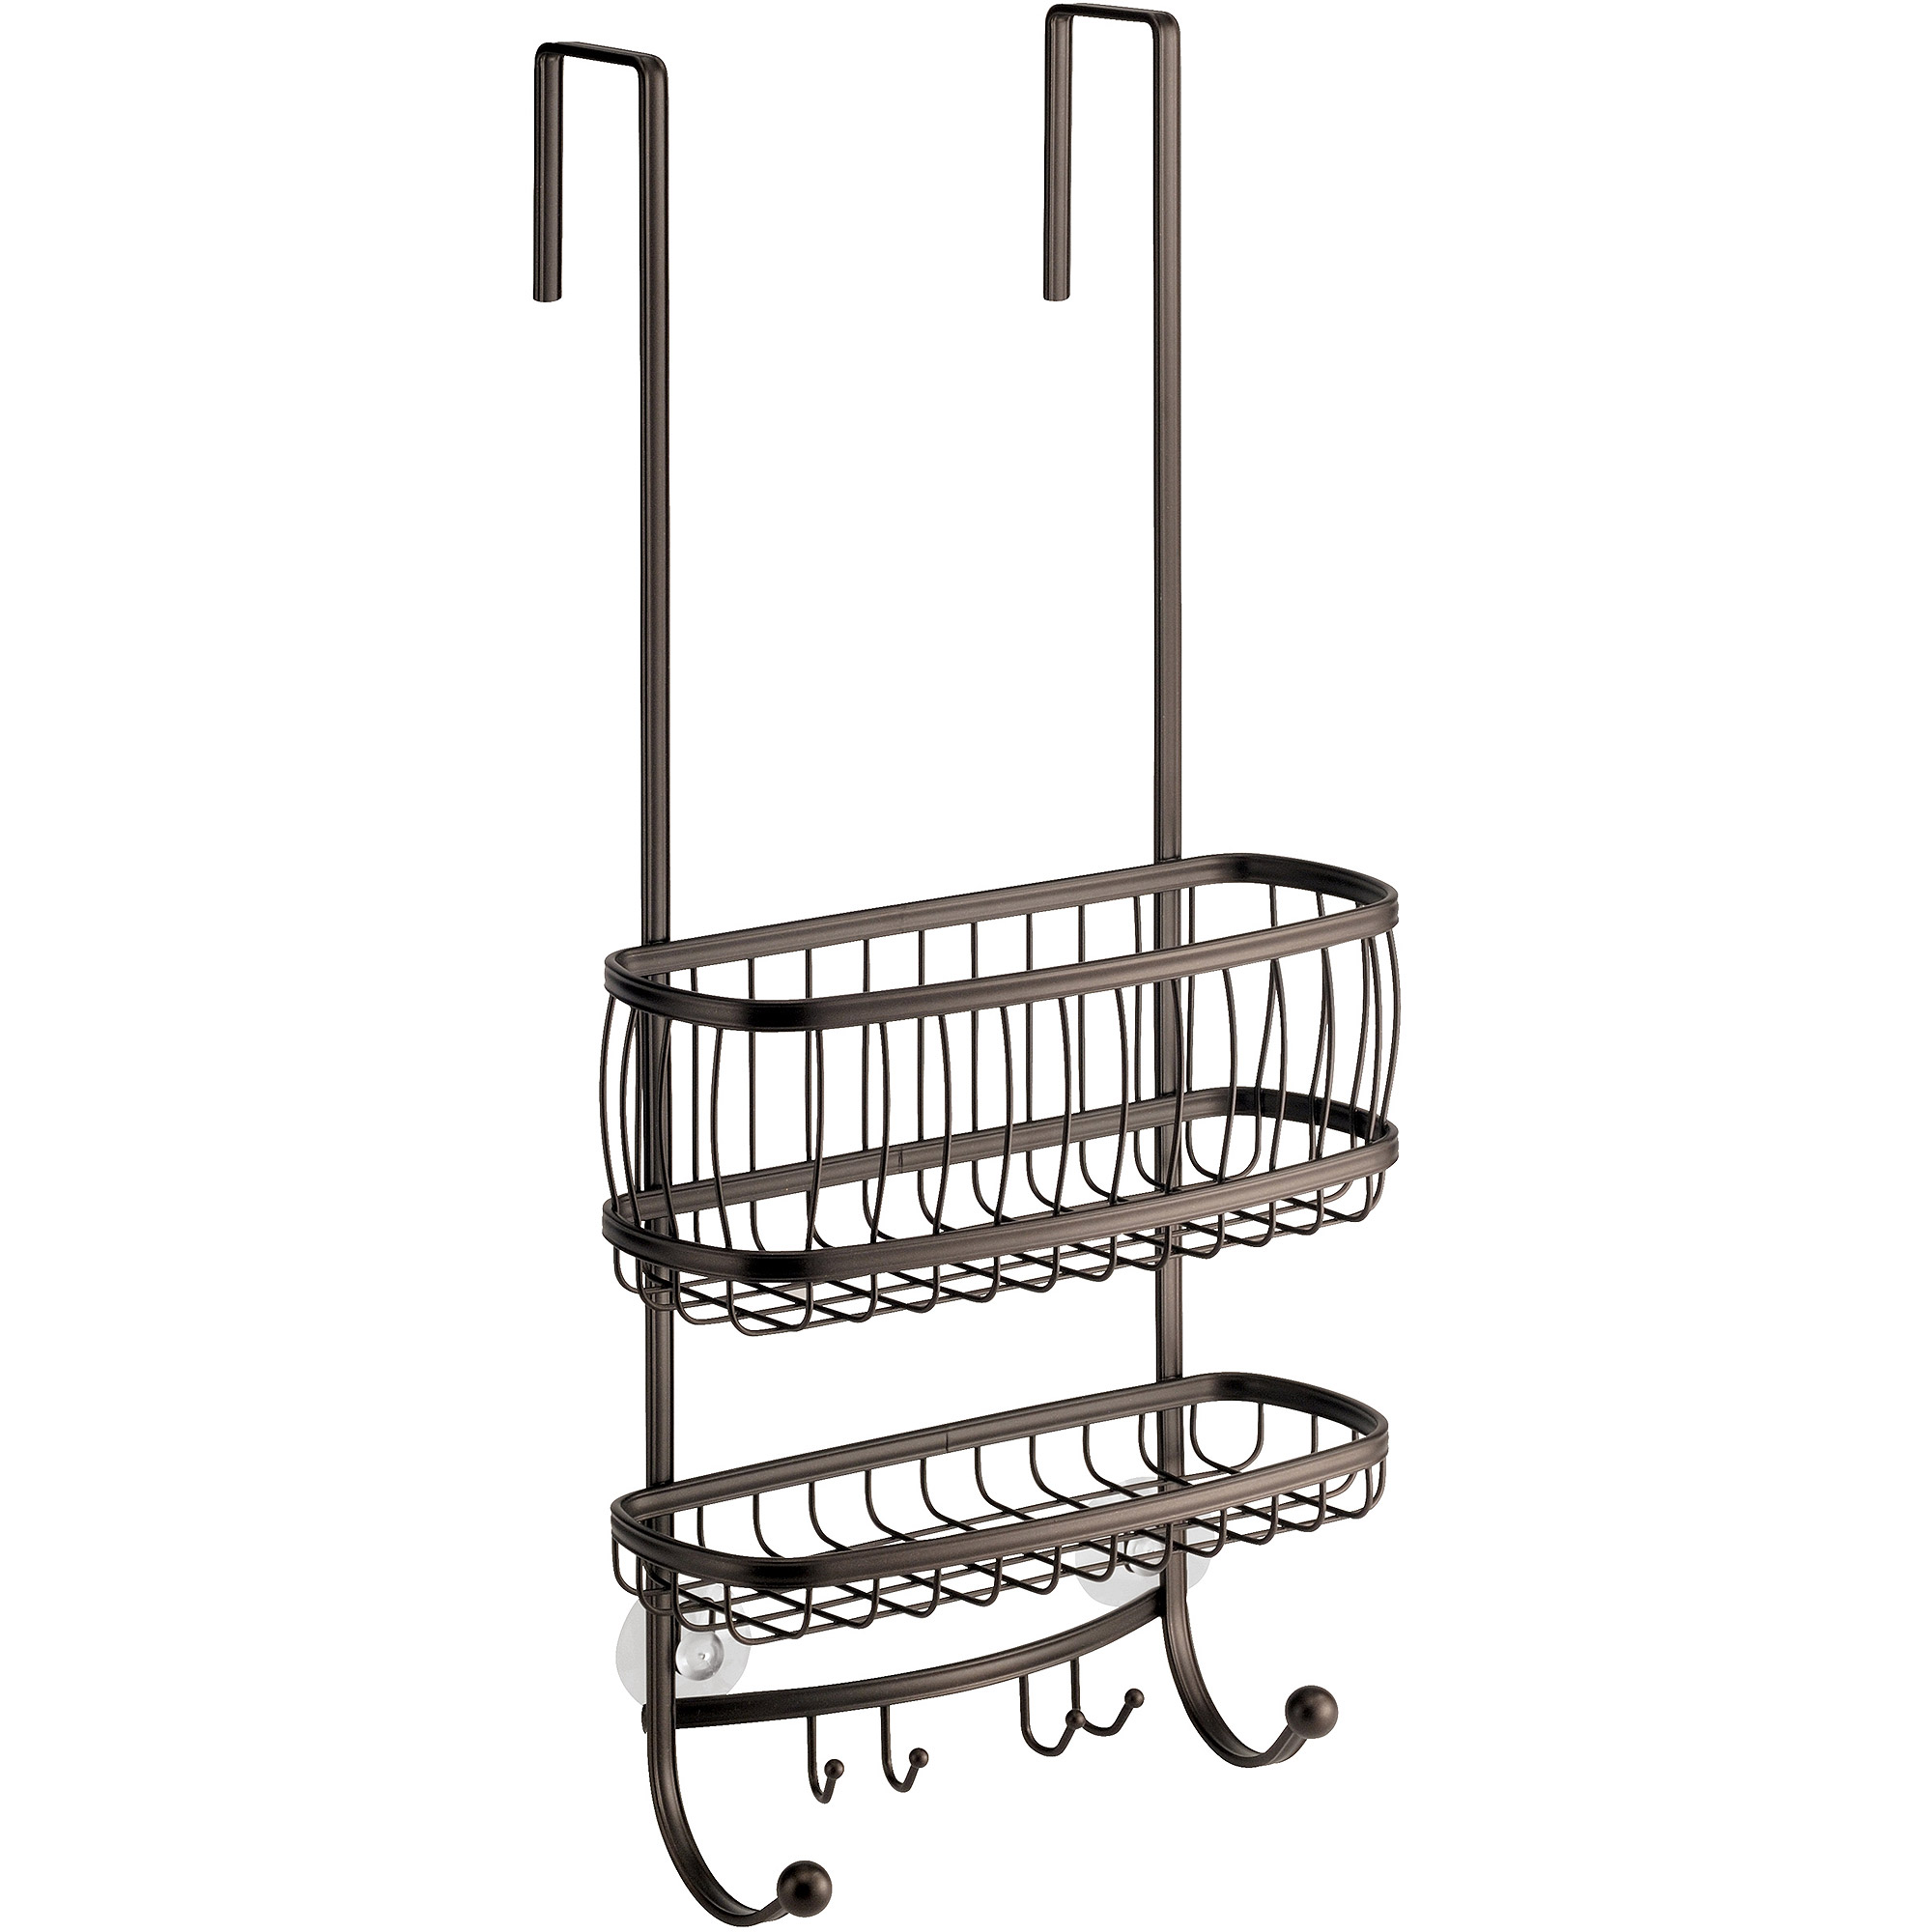 InterDesign York Over-the-Shower Door Shower Caddy by INTERDESIGN